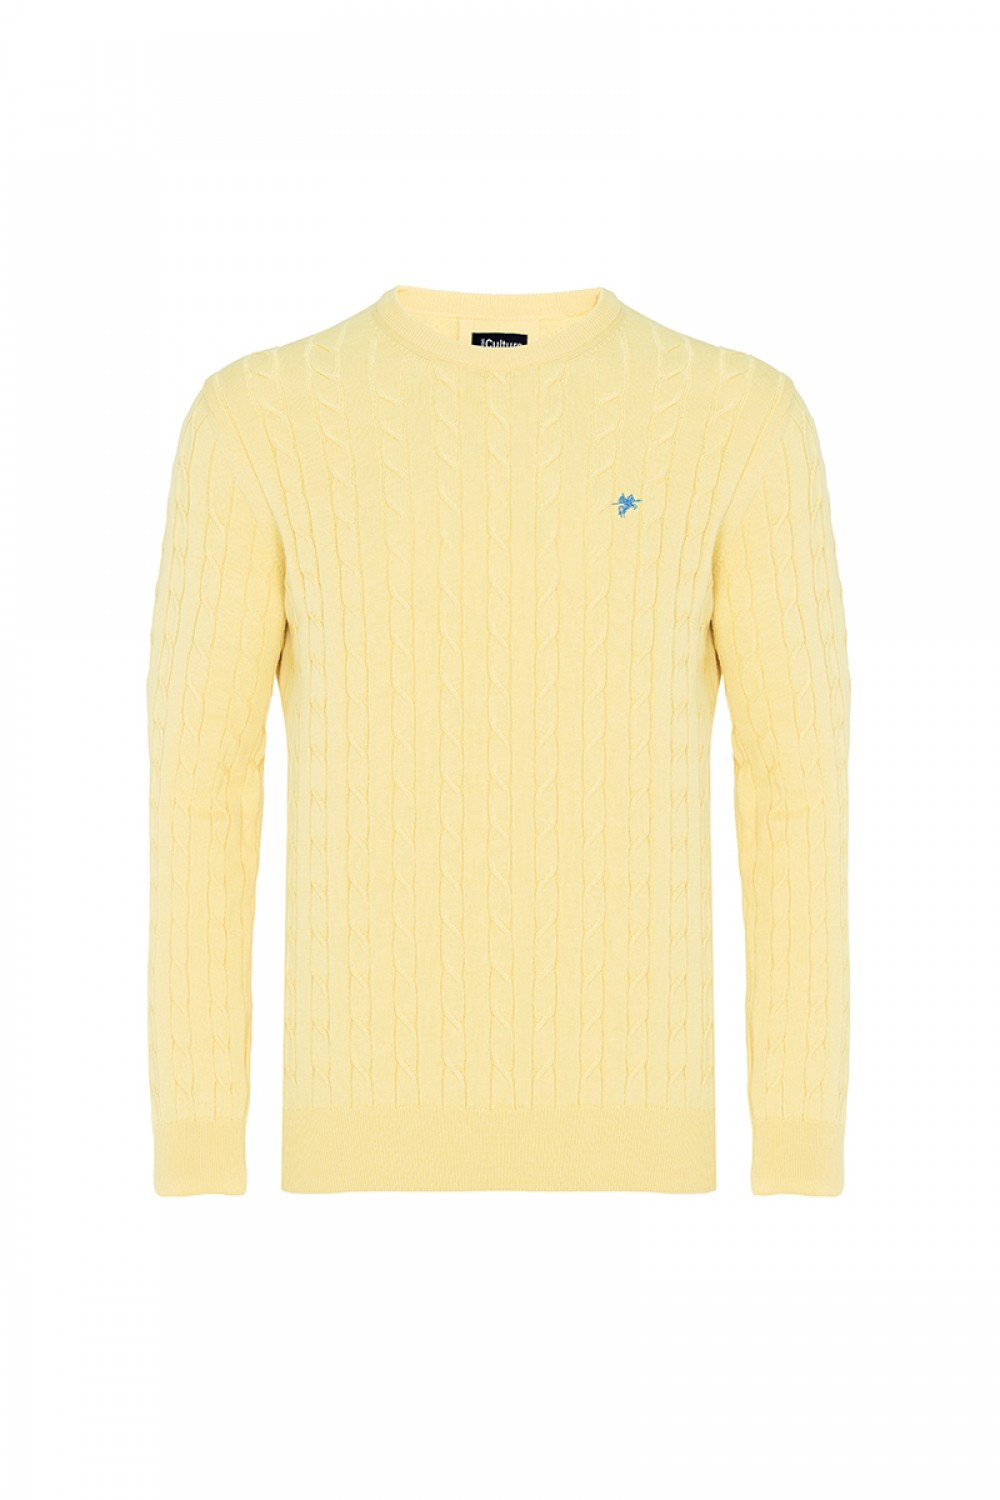 Men's Pullover  Crew Neck Yellow Cotton